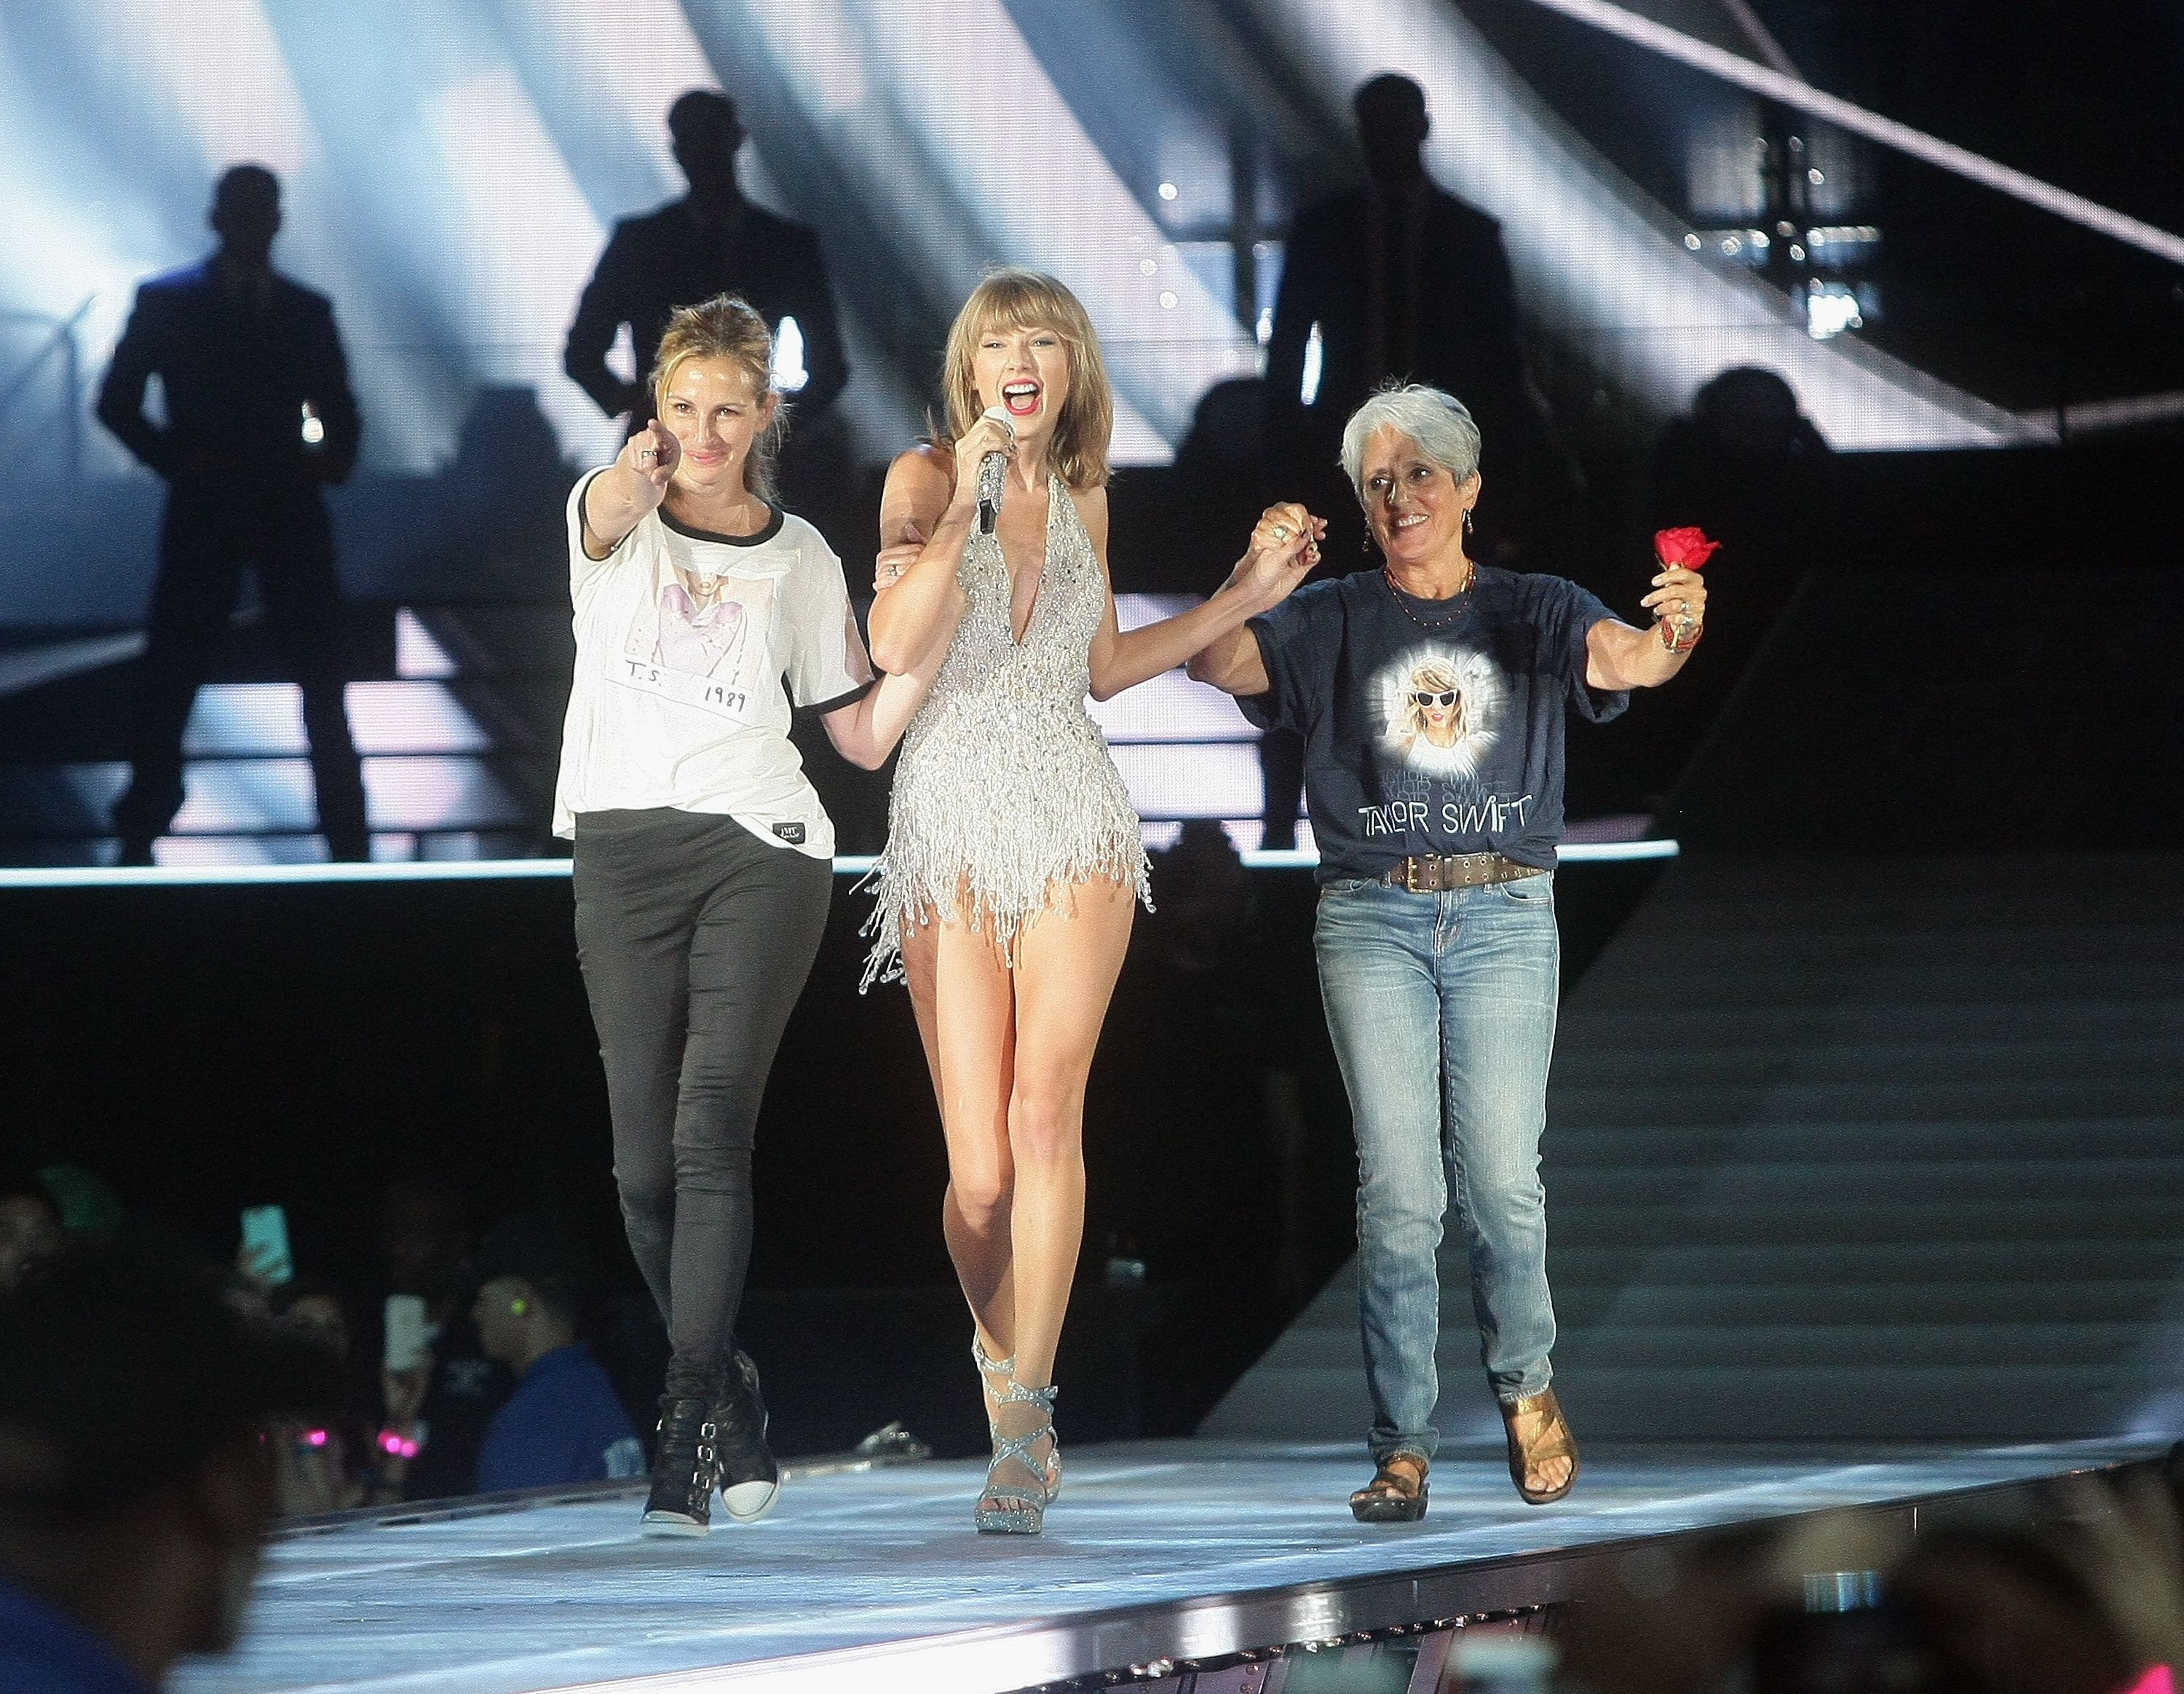 SANTA CLARA, CA - AUGUST 15:  (L-R) Actress Julia Roberts, Taylor Swift and musician Joan Baez appear together during Swift's 'The 1989 World Tour' at Levi's Stadium on August 15, 2015 in Santa Clara, California.  (Photo by John Medina/LP5/Getty Images for TAS)